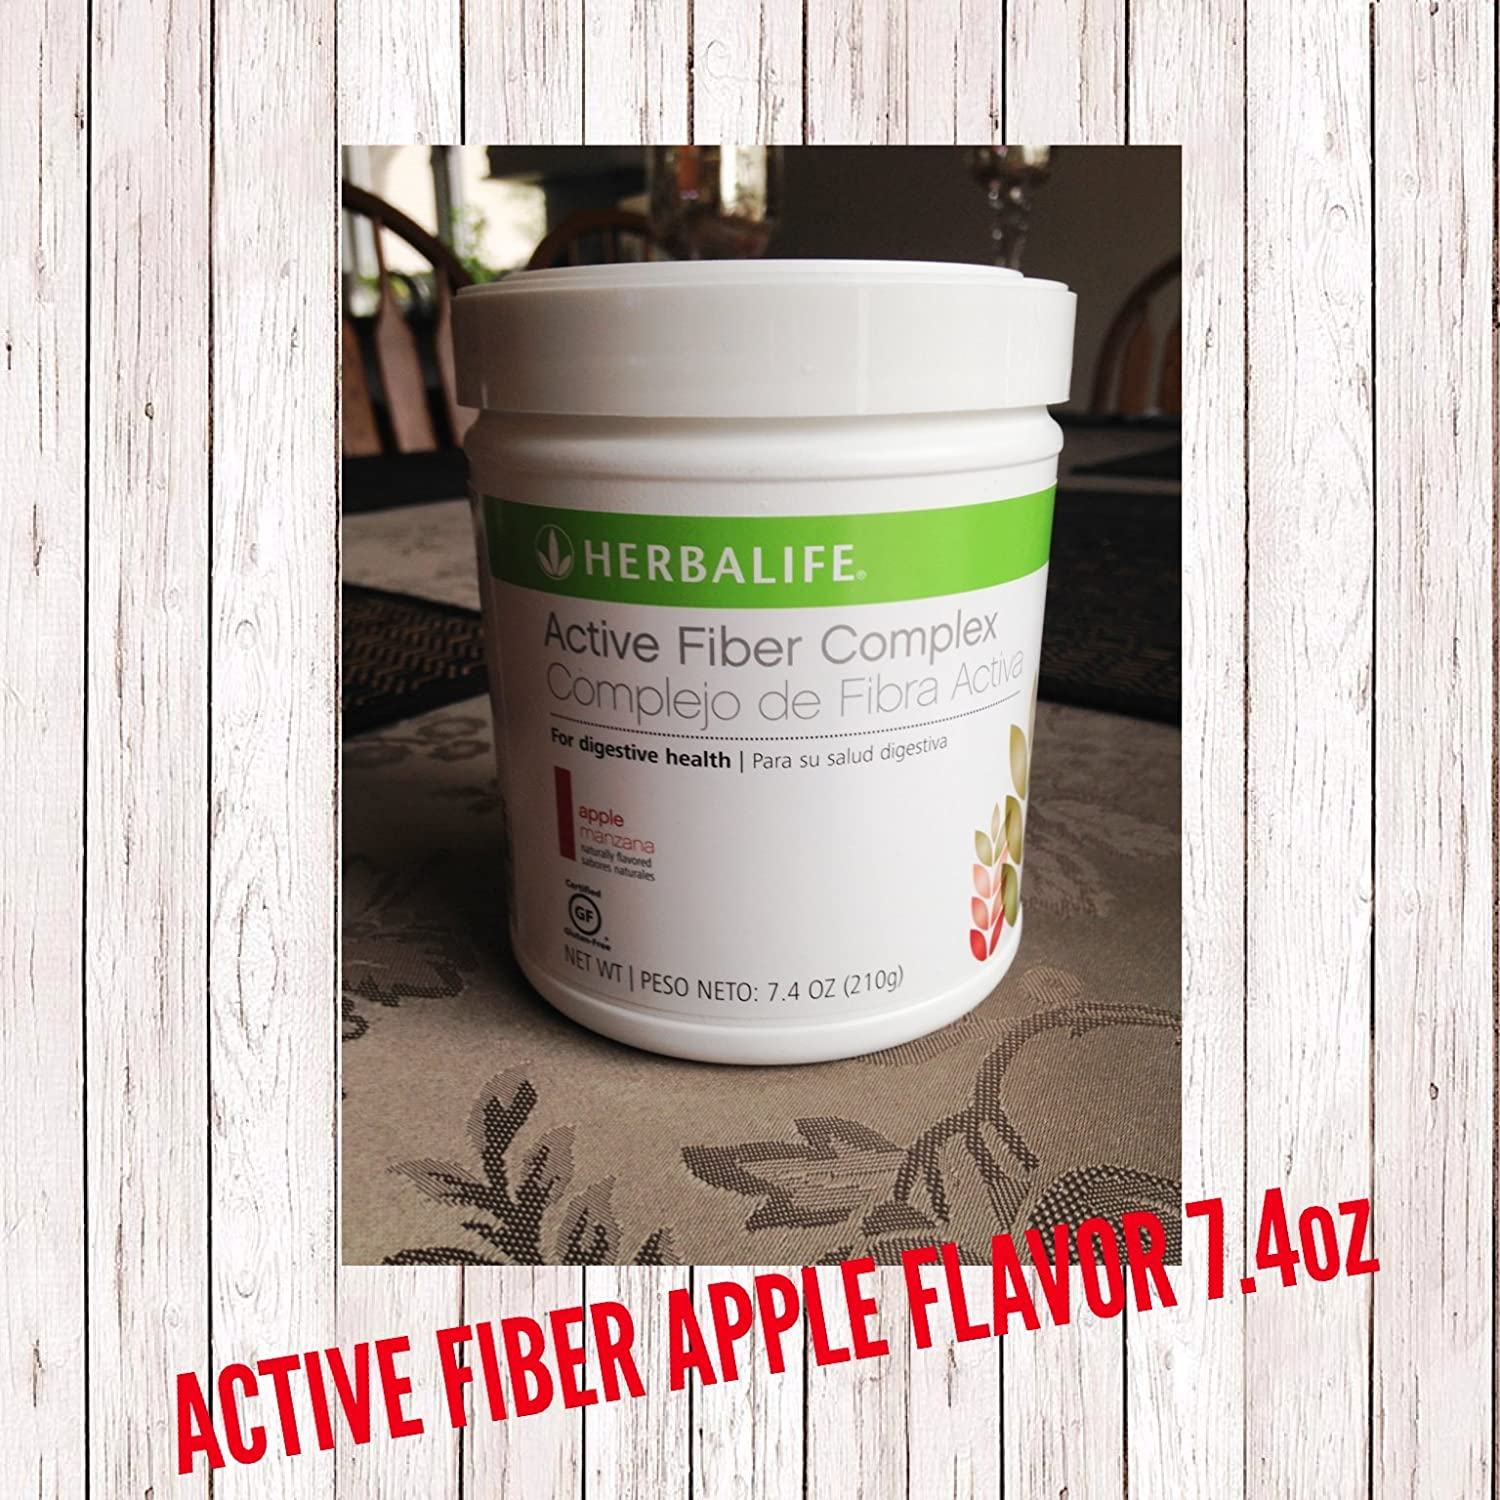 Herbalife 2864 Active Fibre Complex, Apple Flavour 7.4 Oz